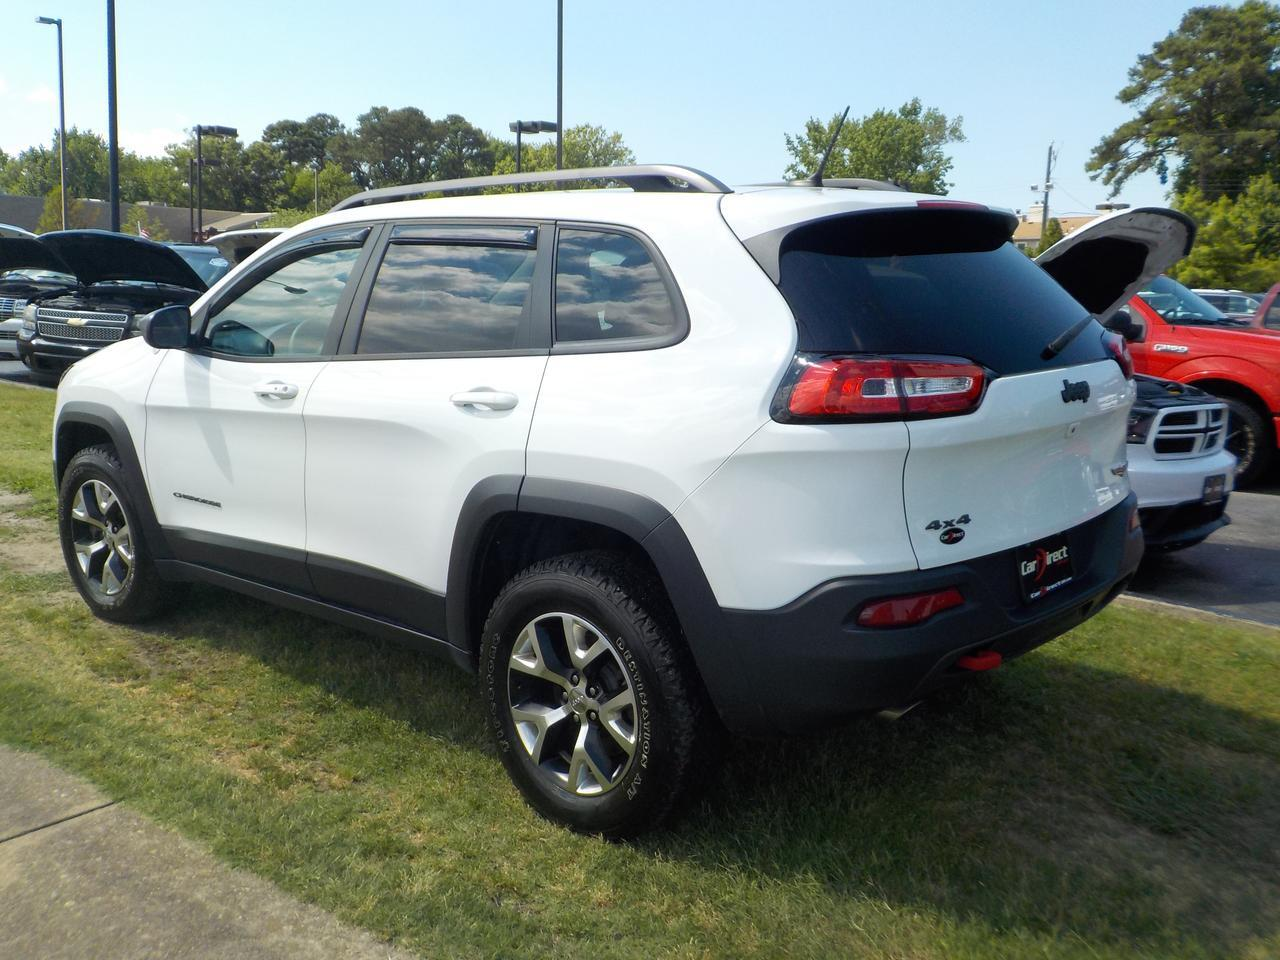 2015 JEEP CHEROKEE TRAILHAWK 4X4, WARRANTY, NAVIGATION, ROOF RACKS, BACKUP CAMERA, BLUETOOTH, REMOTE START, LEATHER! Virginia Beach VA